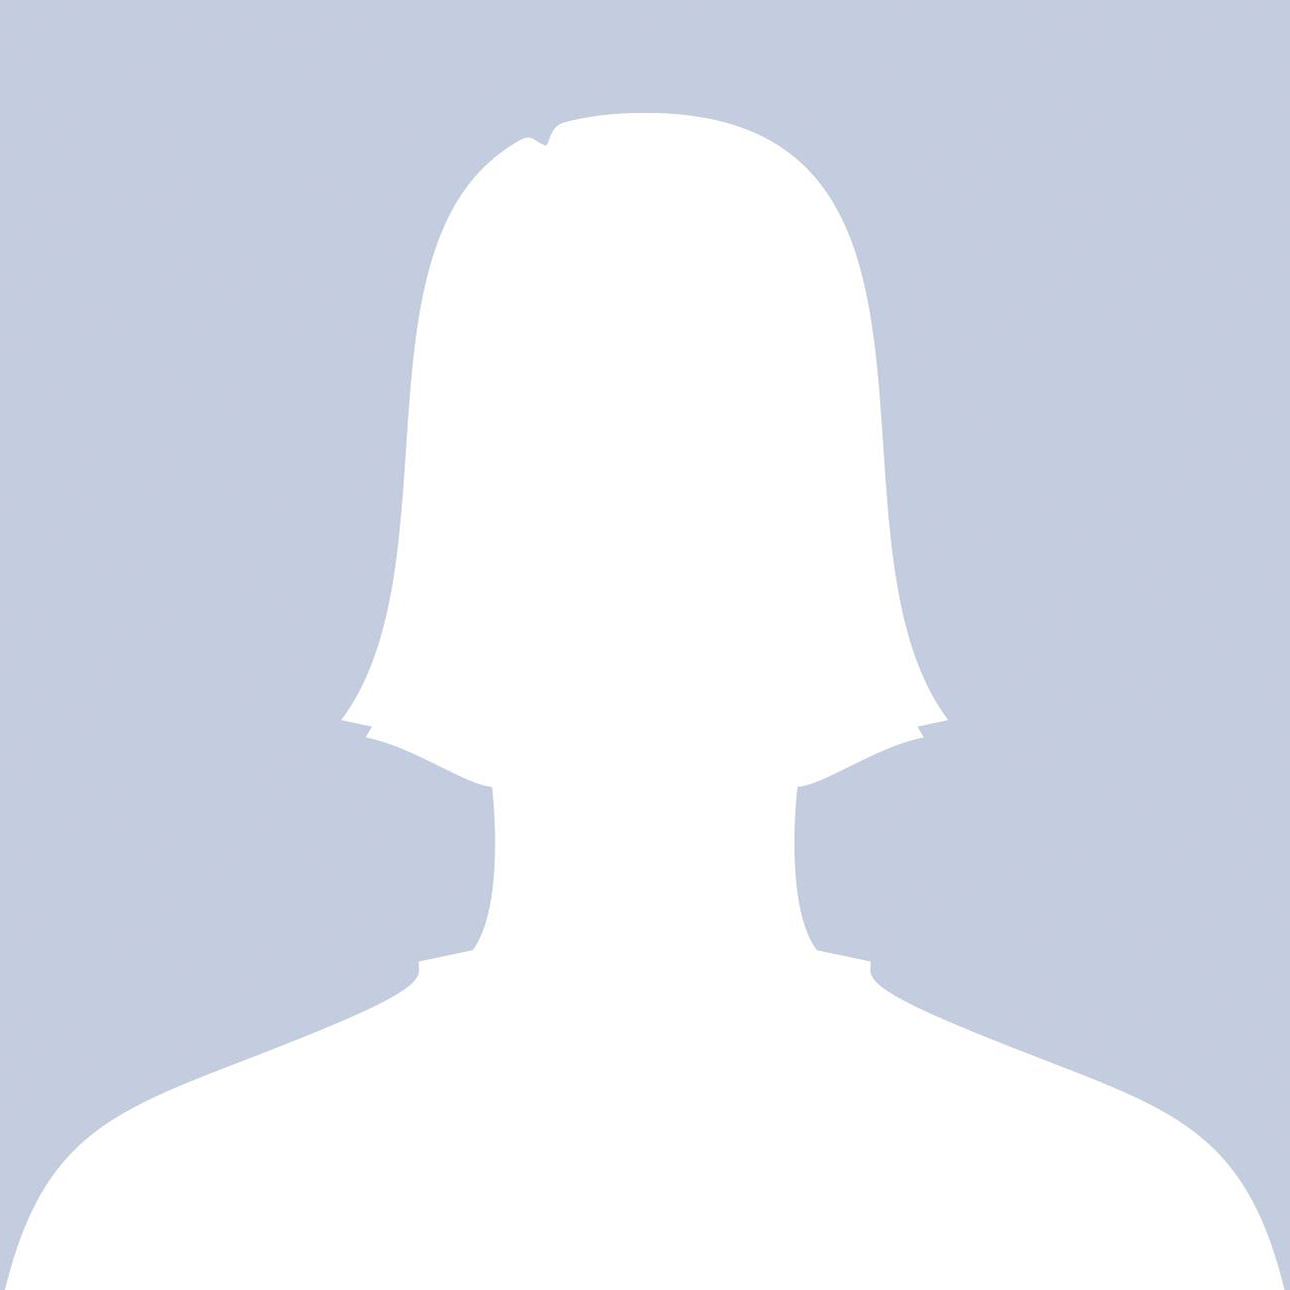 Blank_profile_female